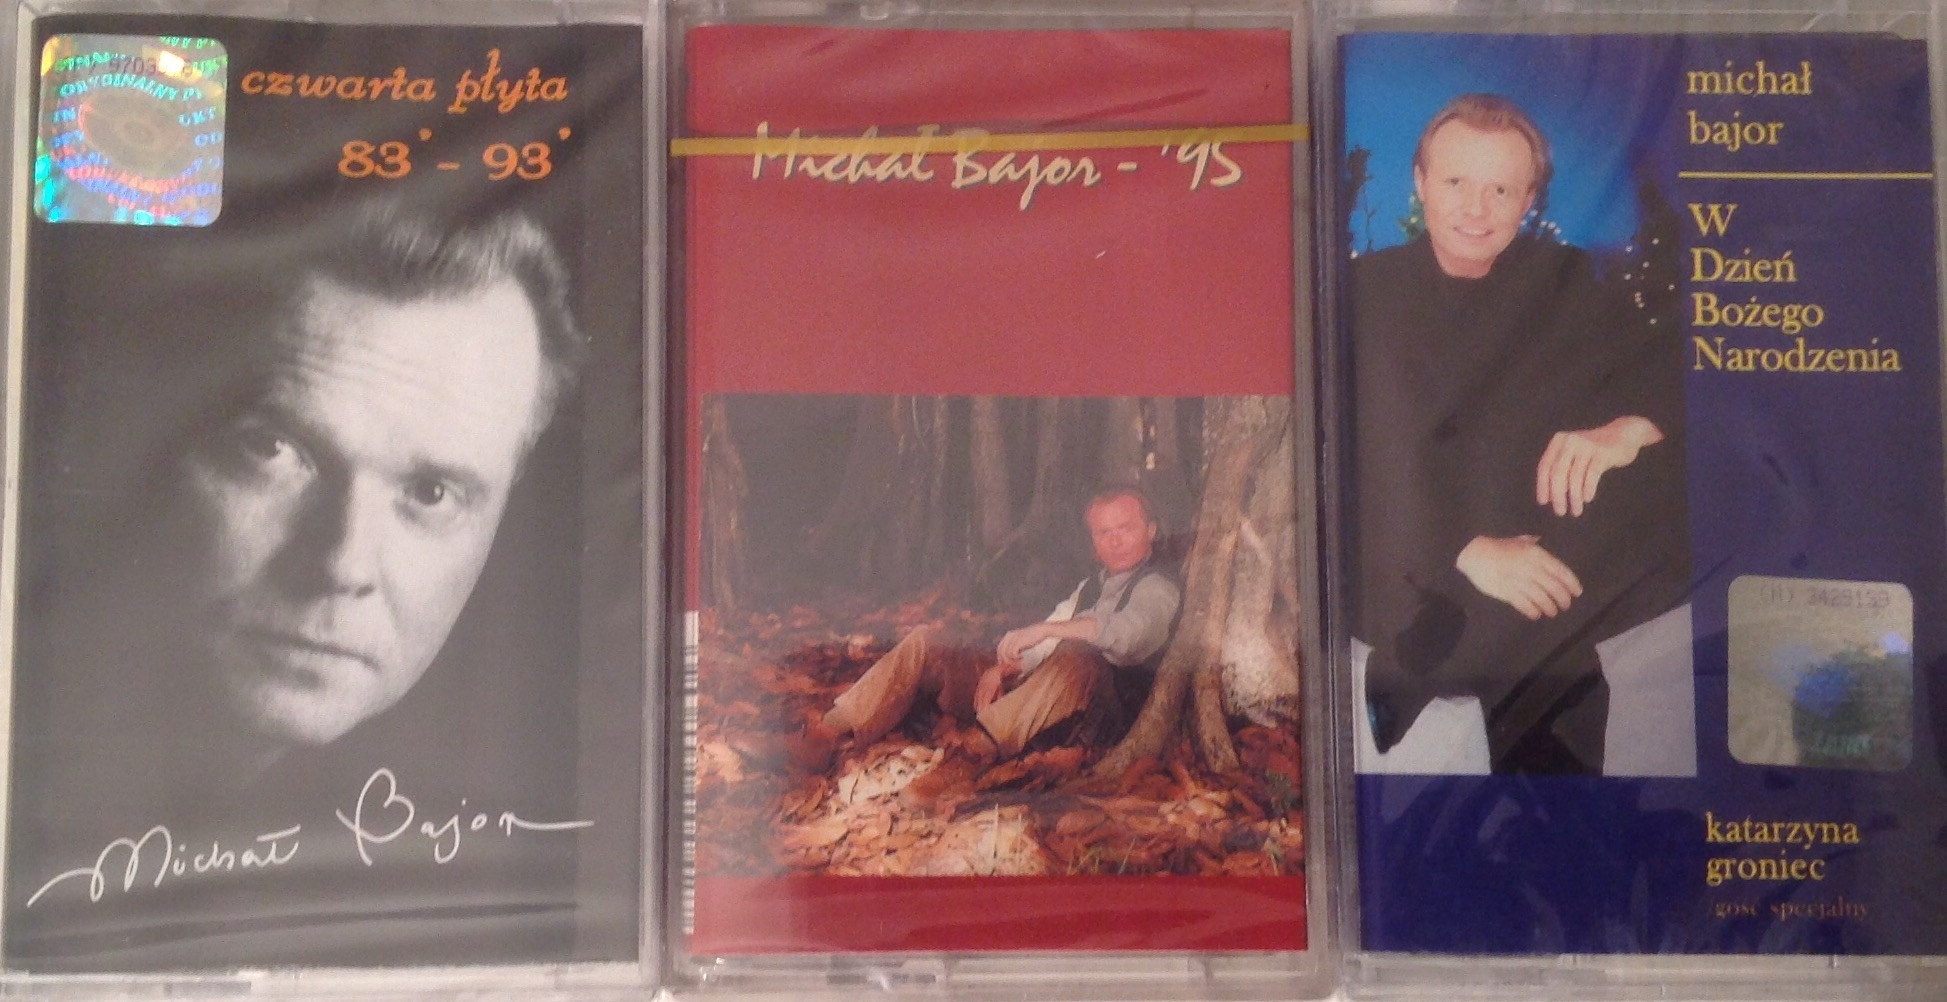 Item MICHAEL BAJOR * 3 AUDIO CASSETTE TAPES * NEW!!! * OPPORTUNITY!!